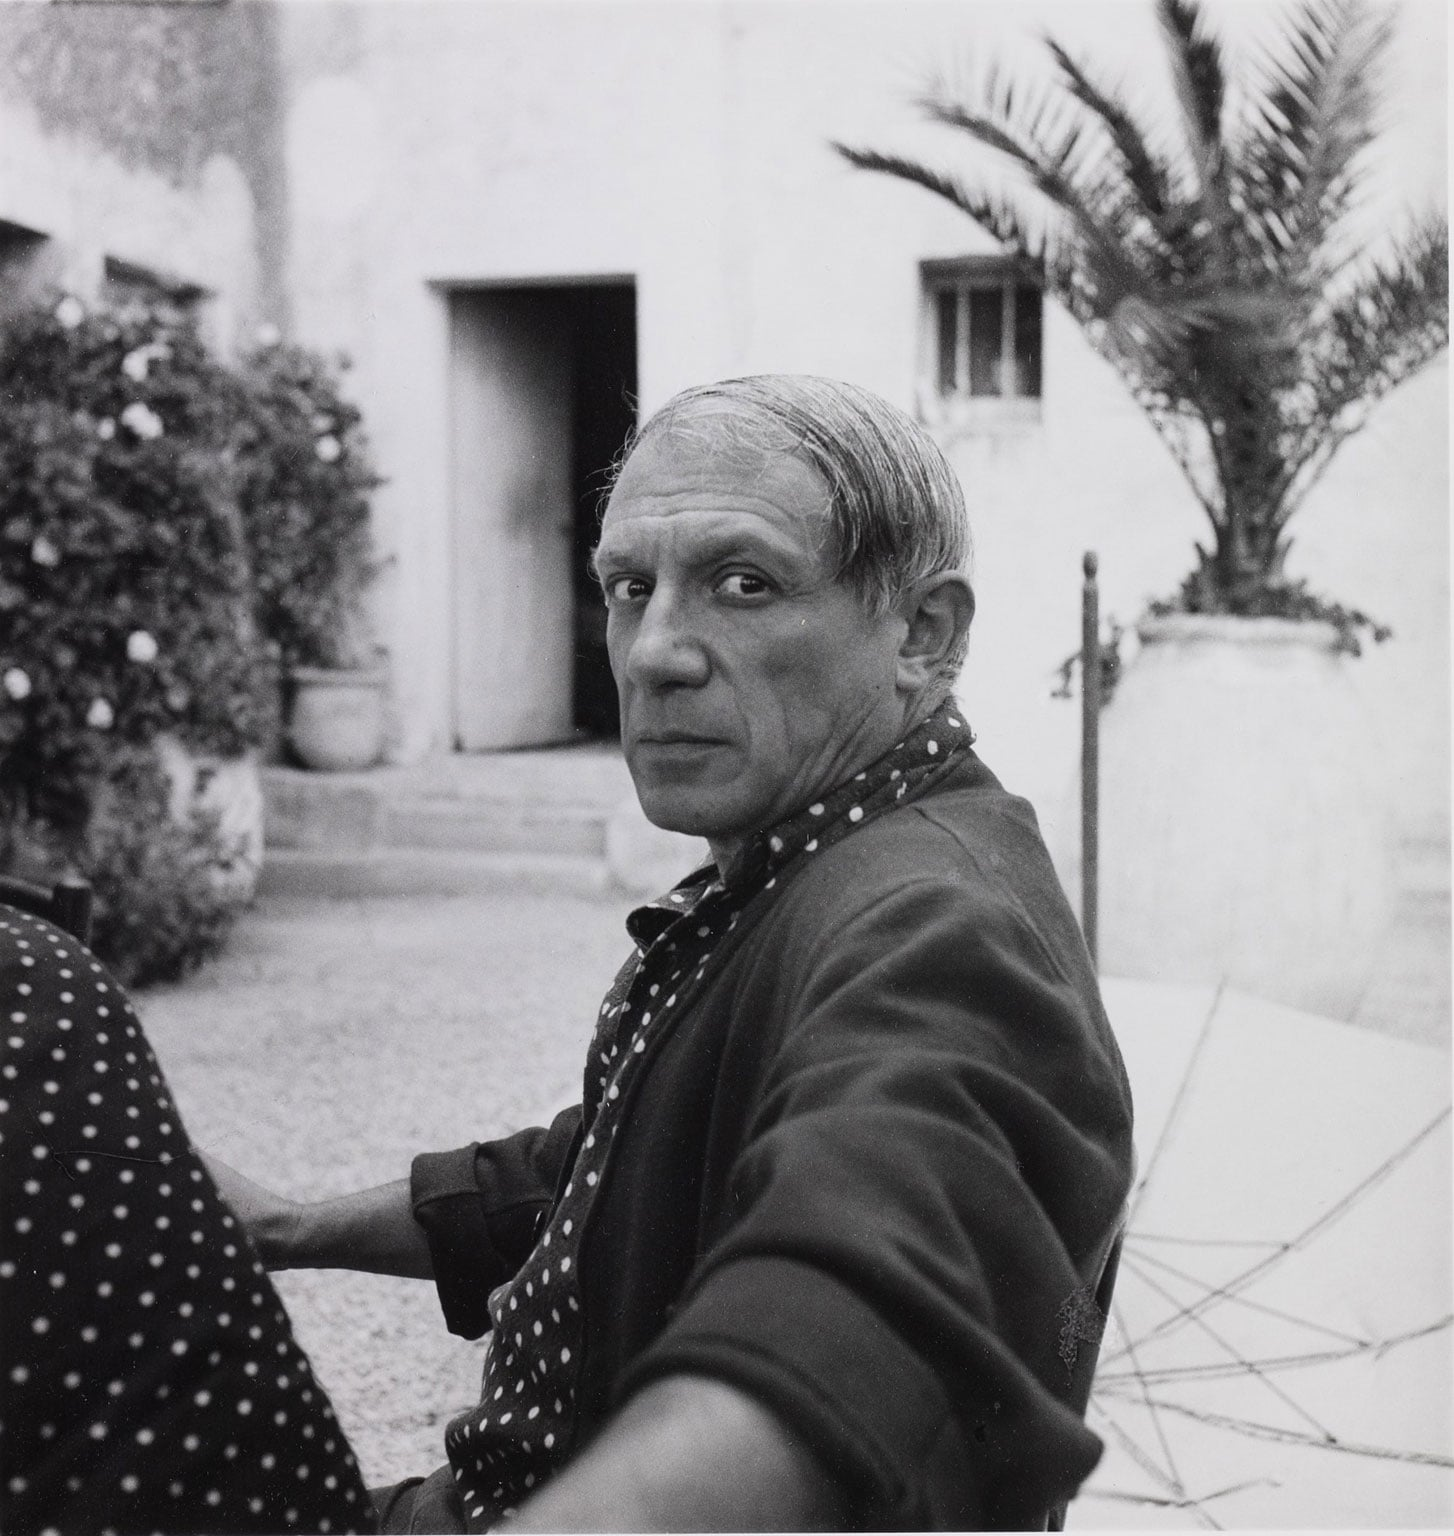 5. Lee Miller and Picasso, Scottish National Portrait Gallery, 50% off with National Art Pass - Lee Miller, Picasso Hôtel Vaste Horizon, Mougins, 1937 © Scottish National Gallery of Modern Art